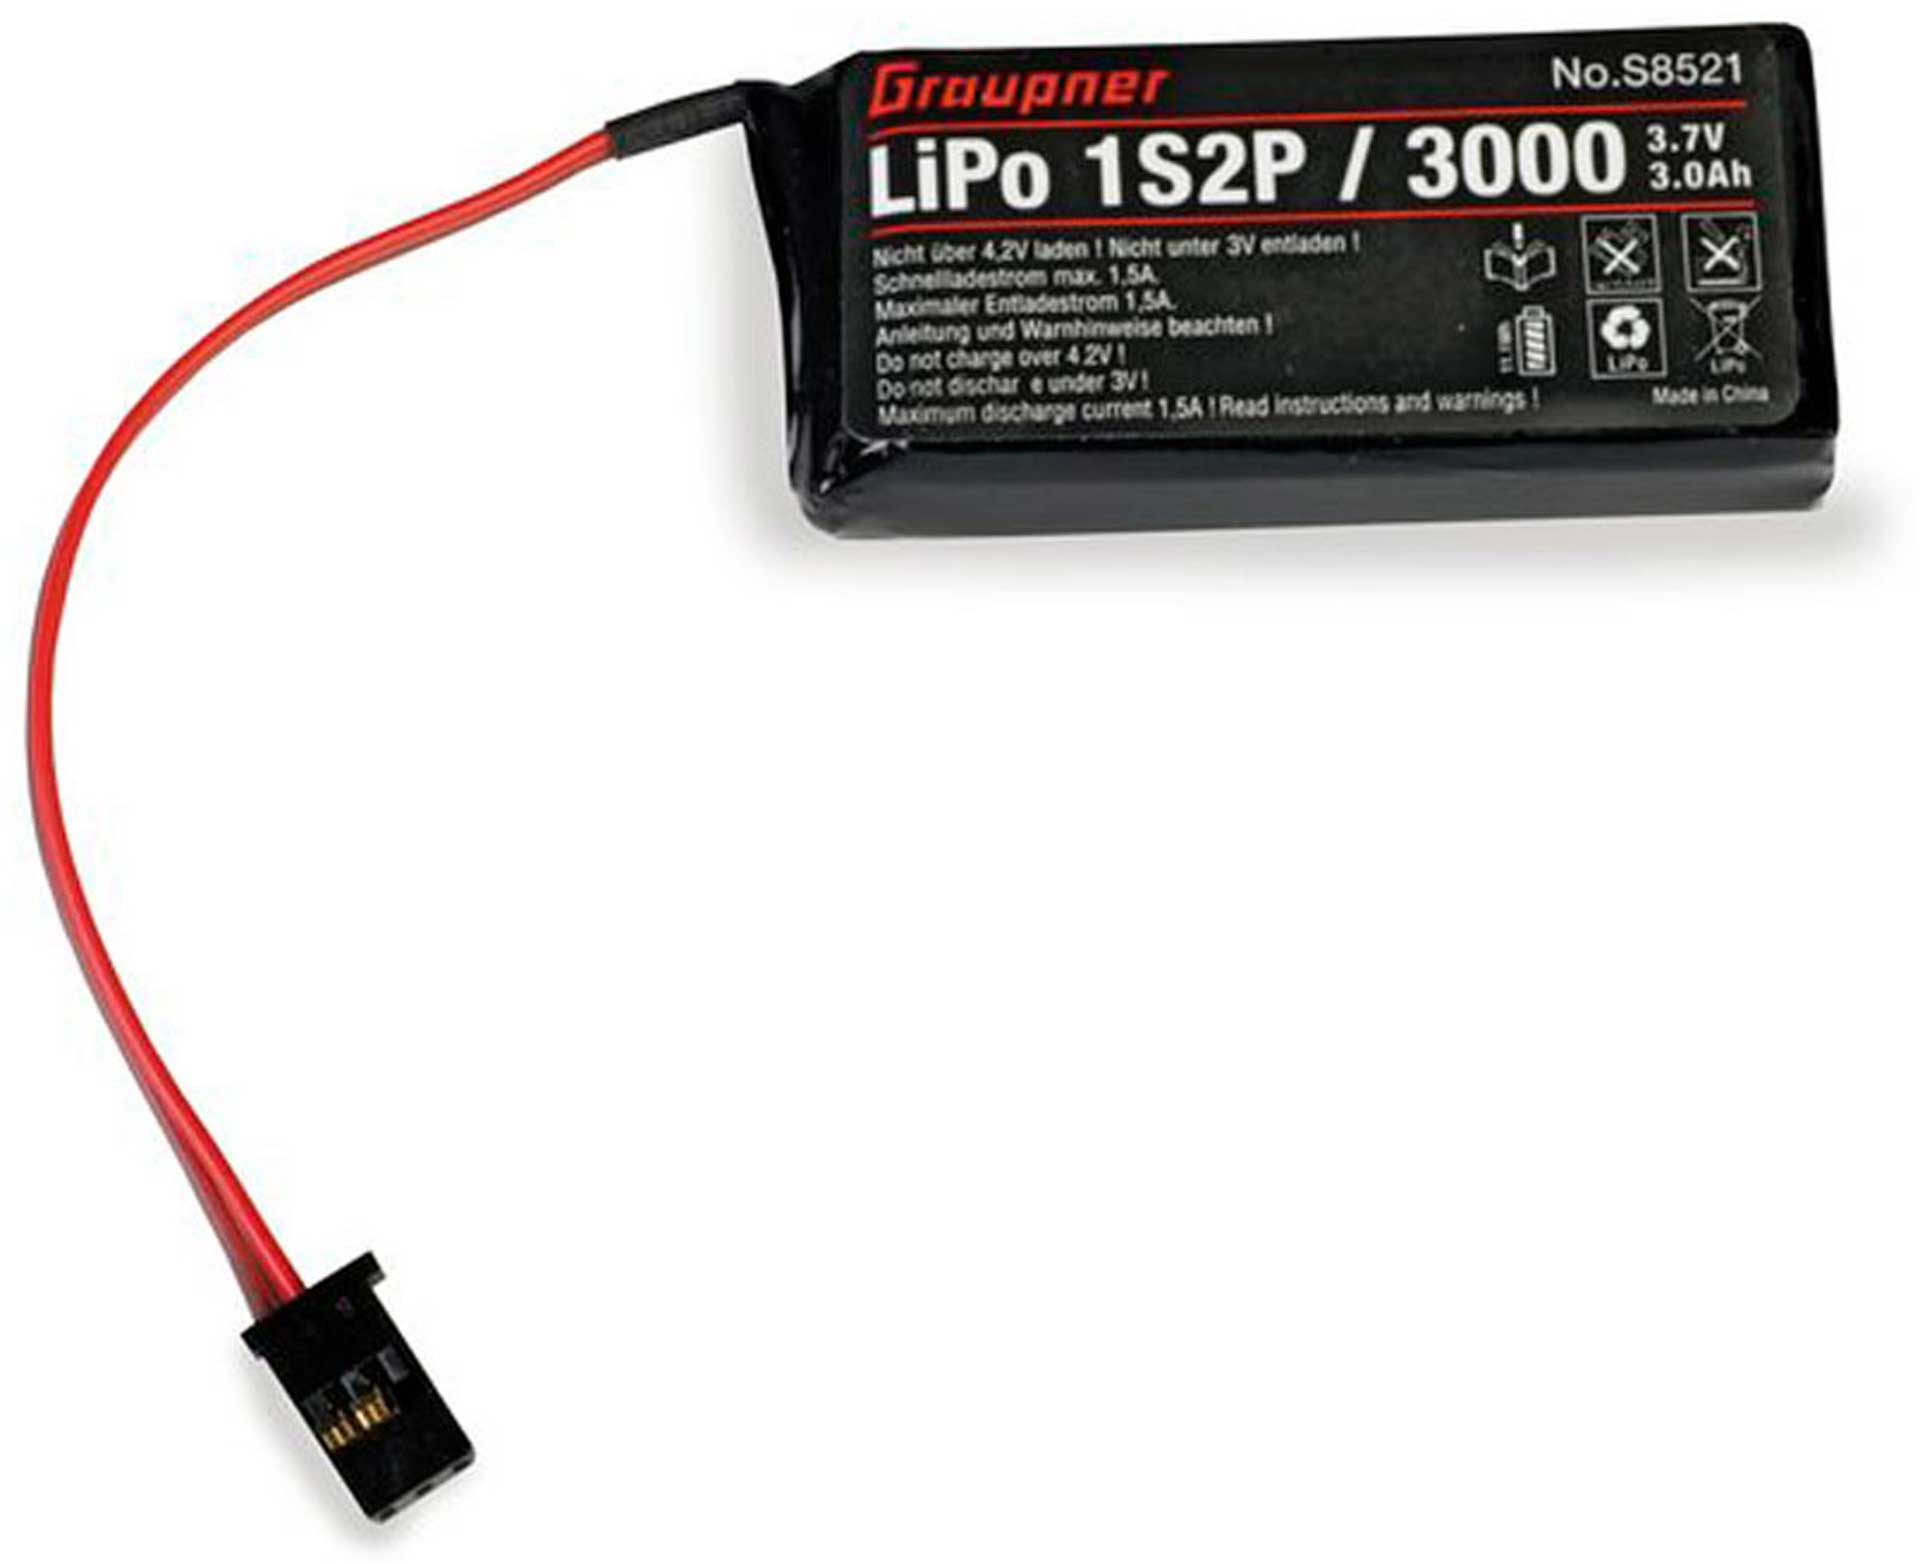 GRAUPNER TRANSMITTER BATTERY LIPO 1S2P/3000 3,7V FOR MZ-12